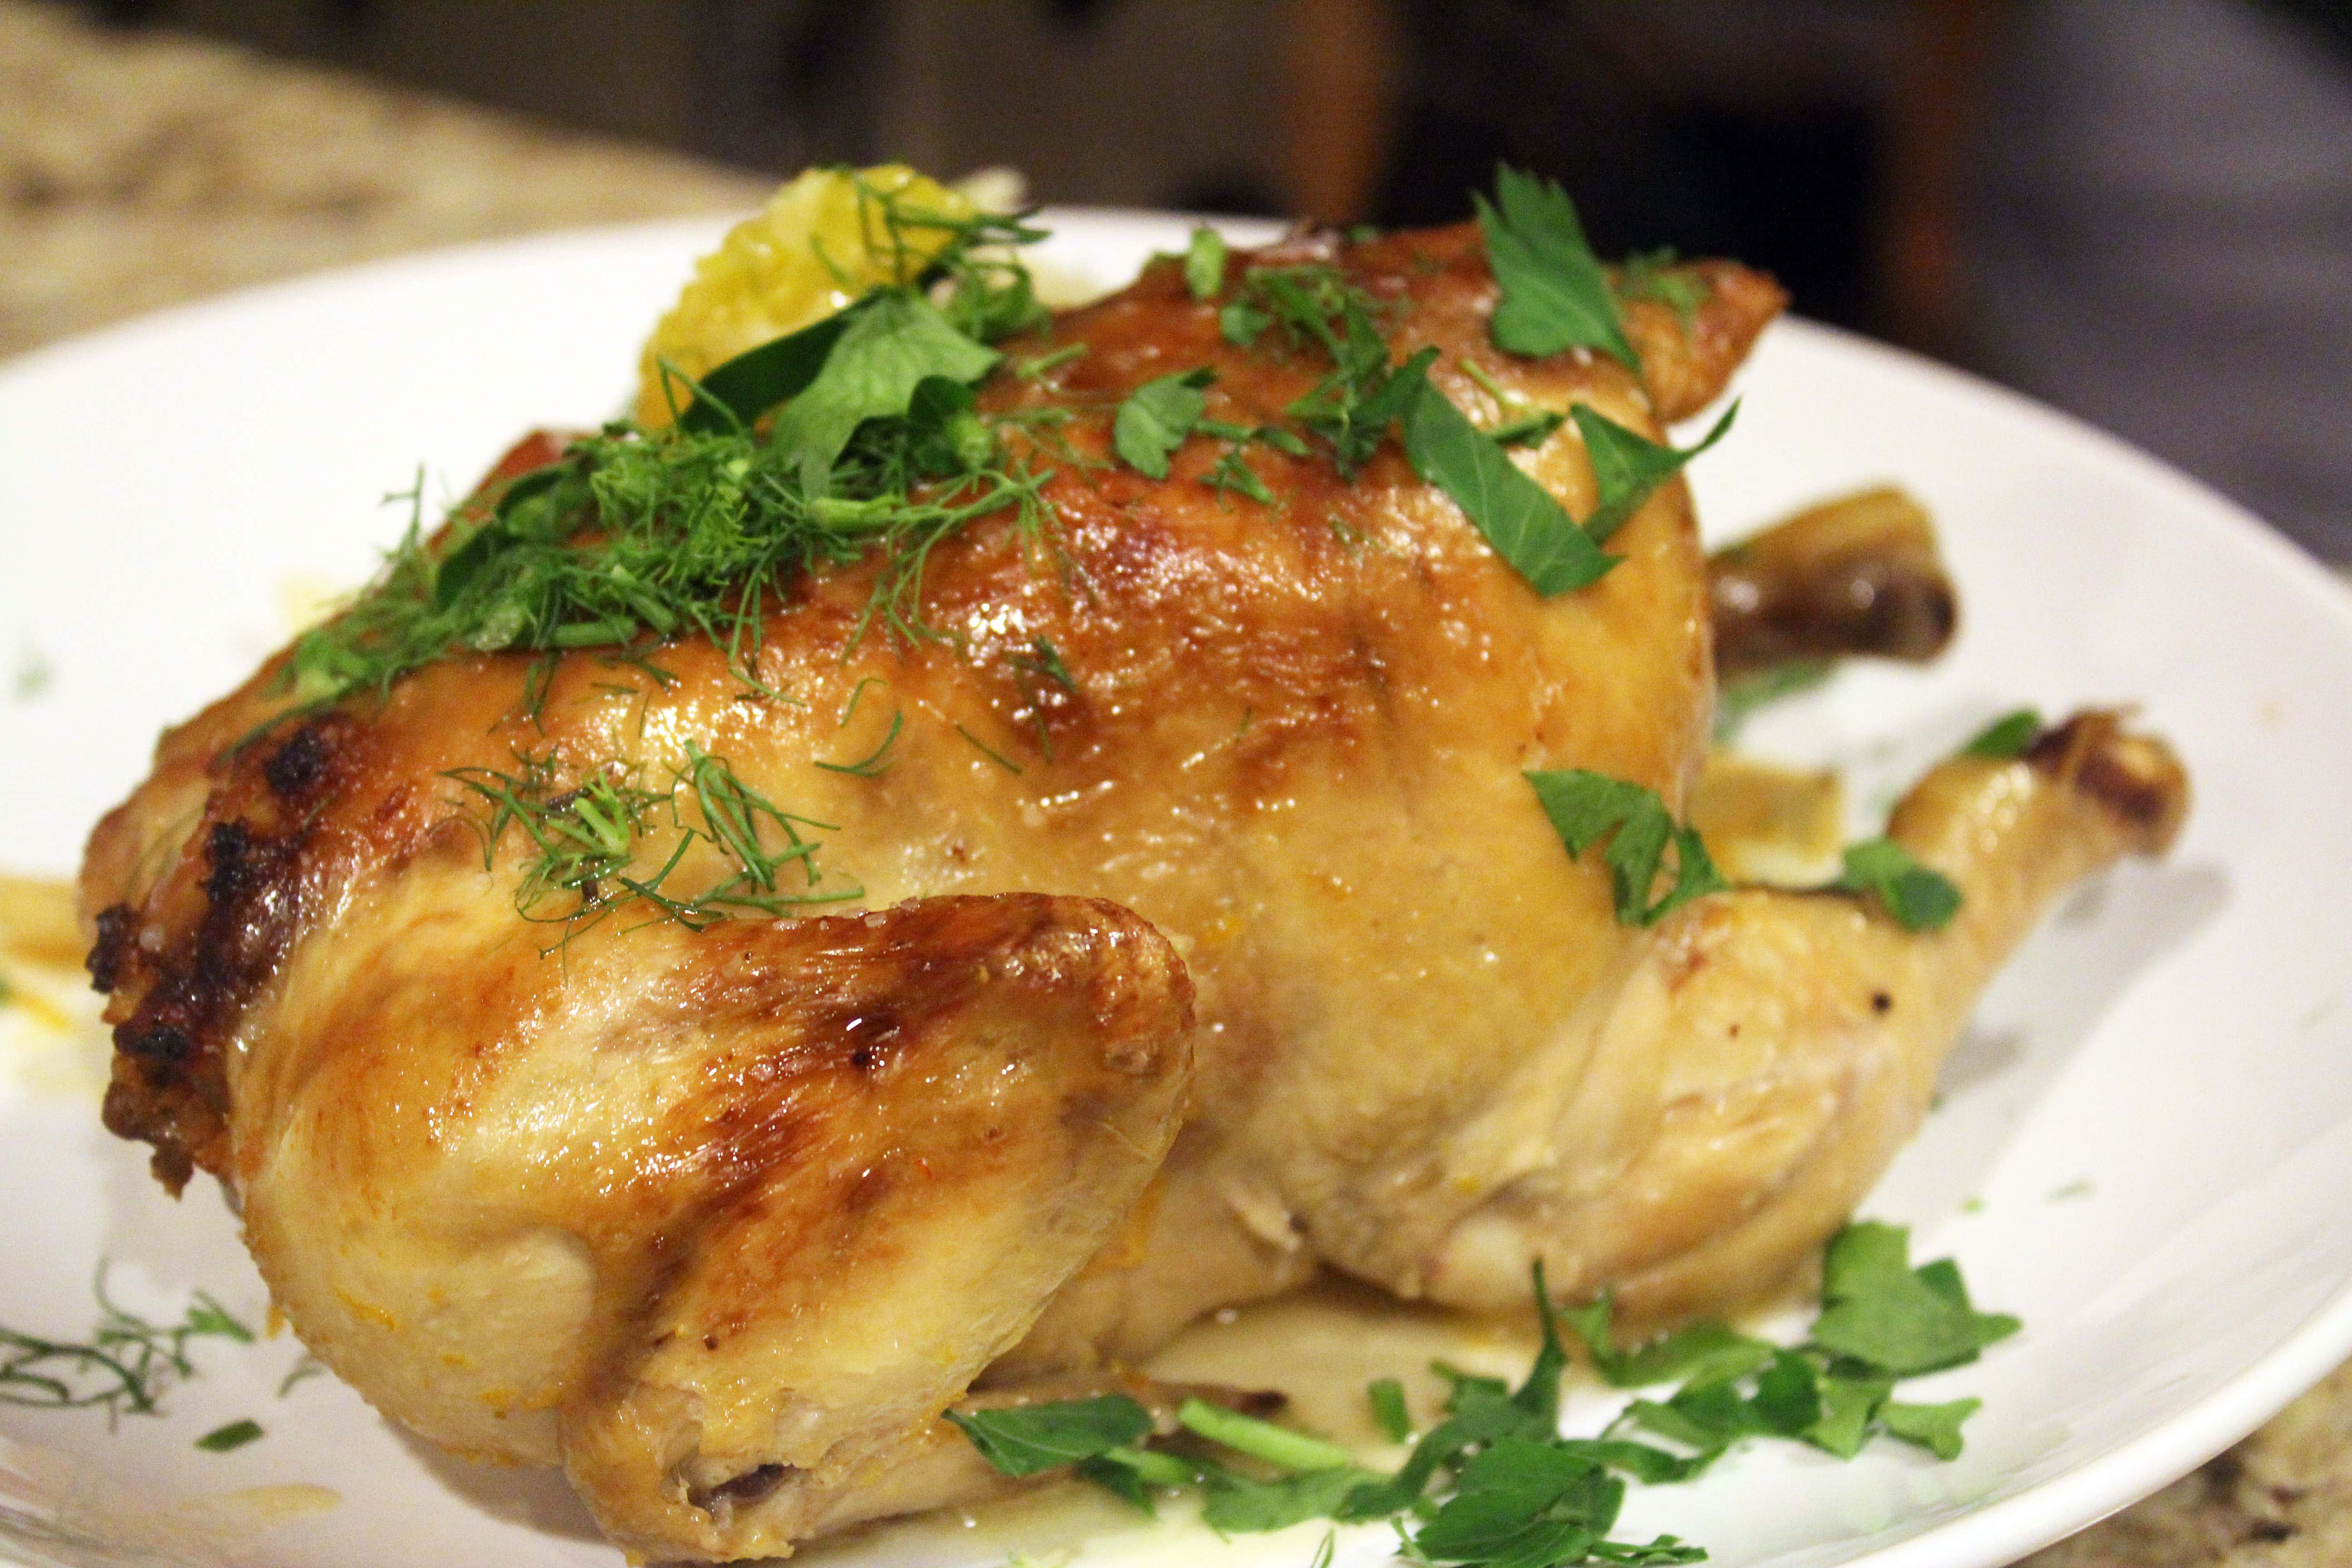 Hen topped with herbs